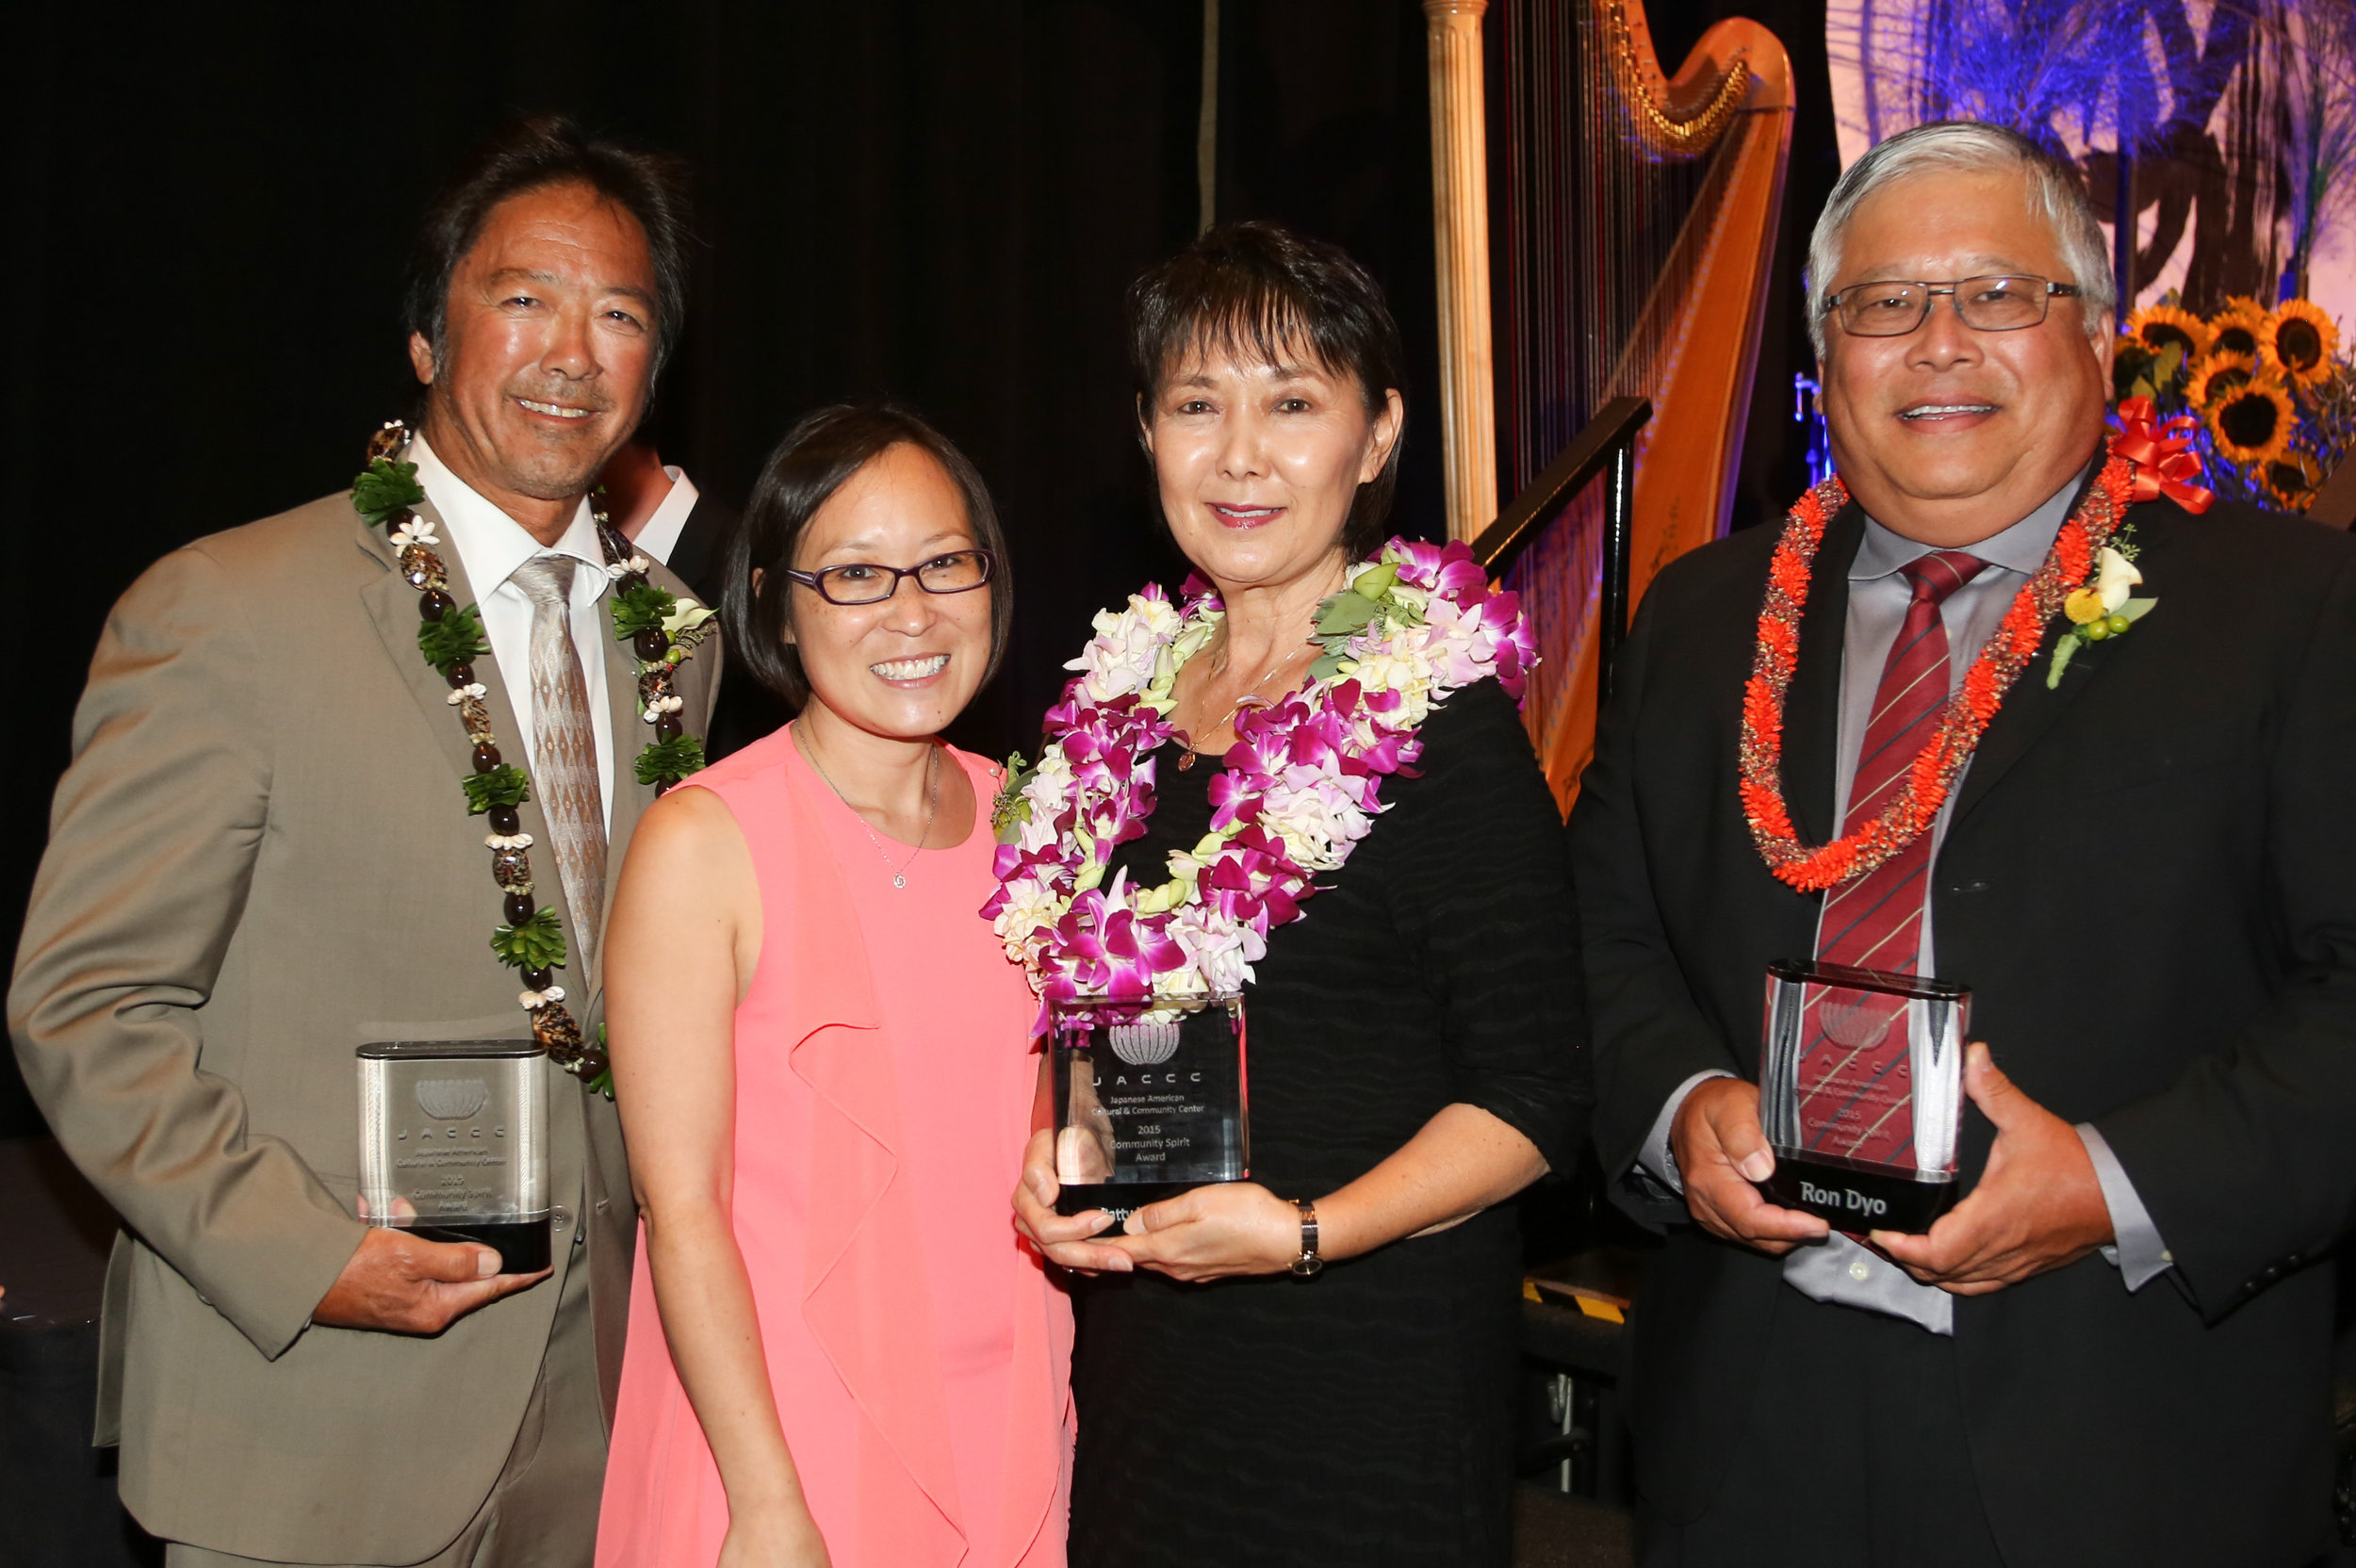 2015 Community Spirit Award Recipients Glenn Tanaka, Patty Ito Nagano, and Ron Dyo with JACCC President & CEO Leslie Ito